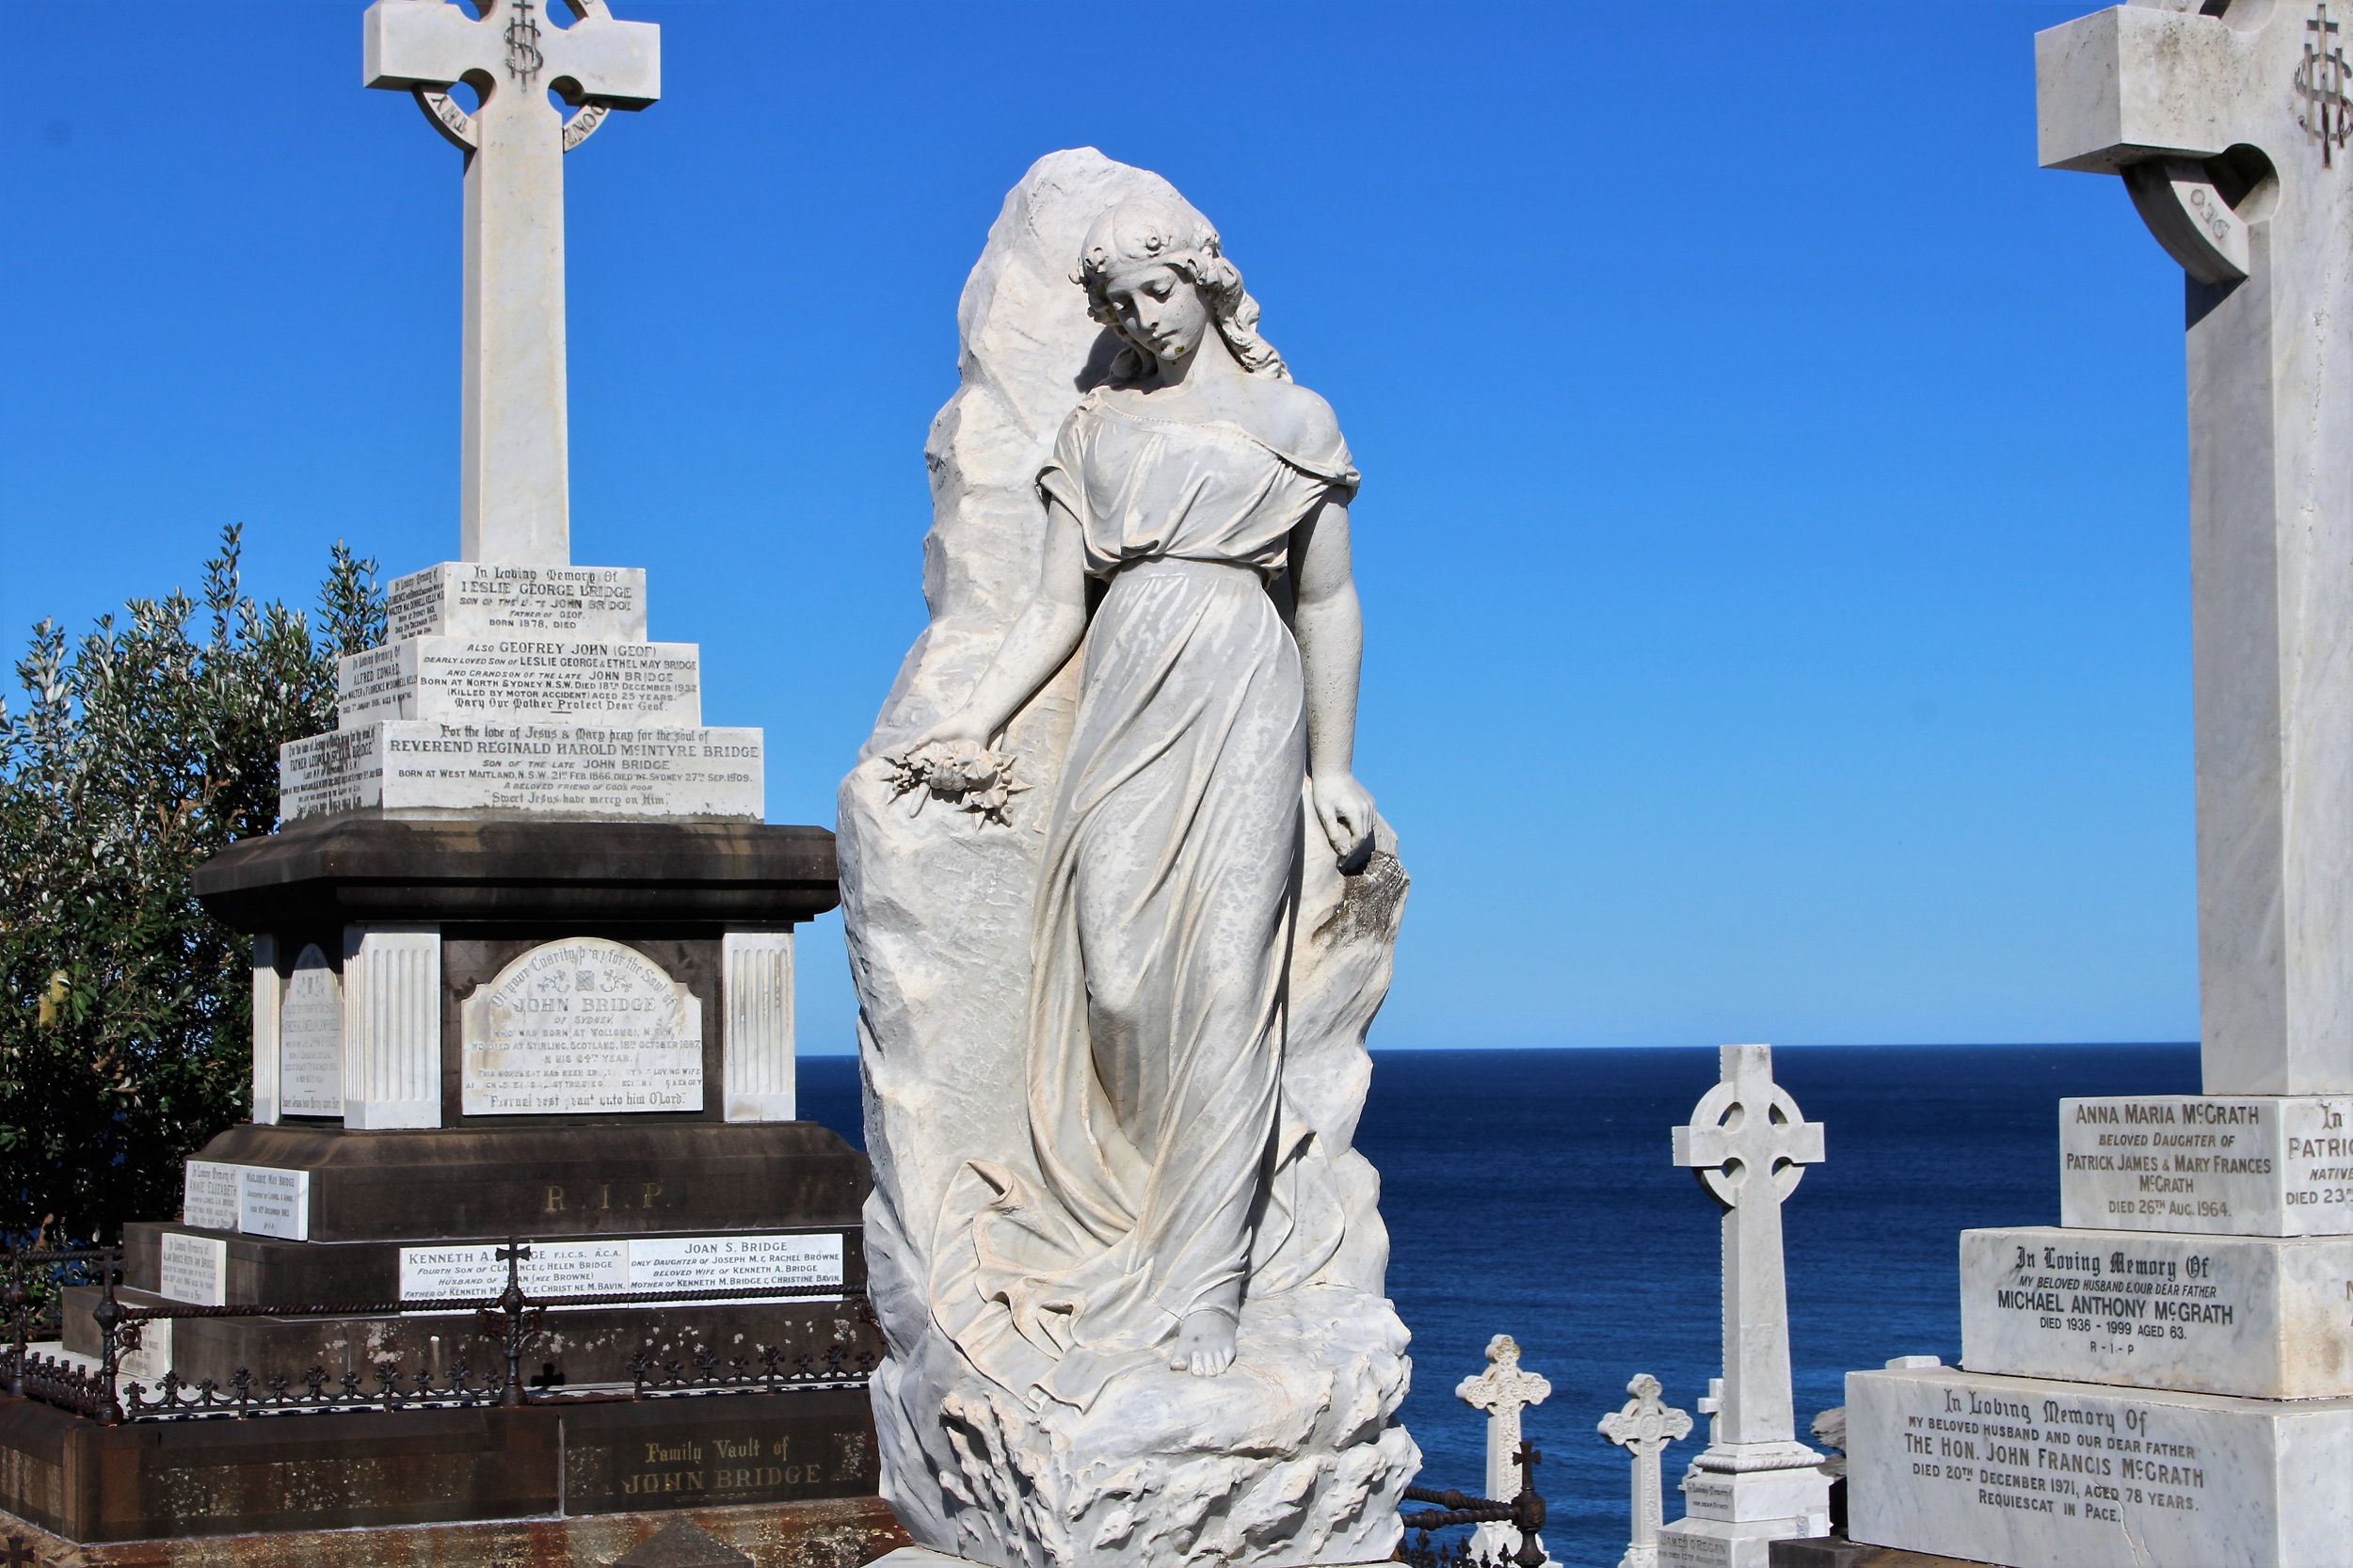 a graceful sculpture remembering a woman who passed away in 1910